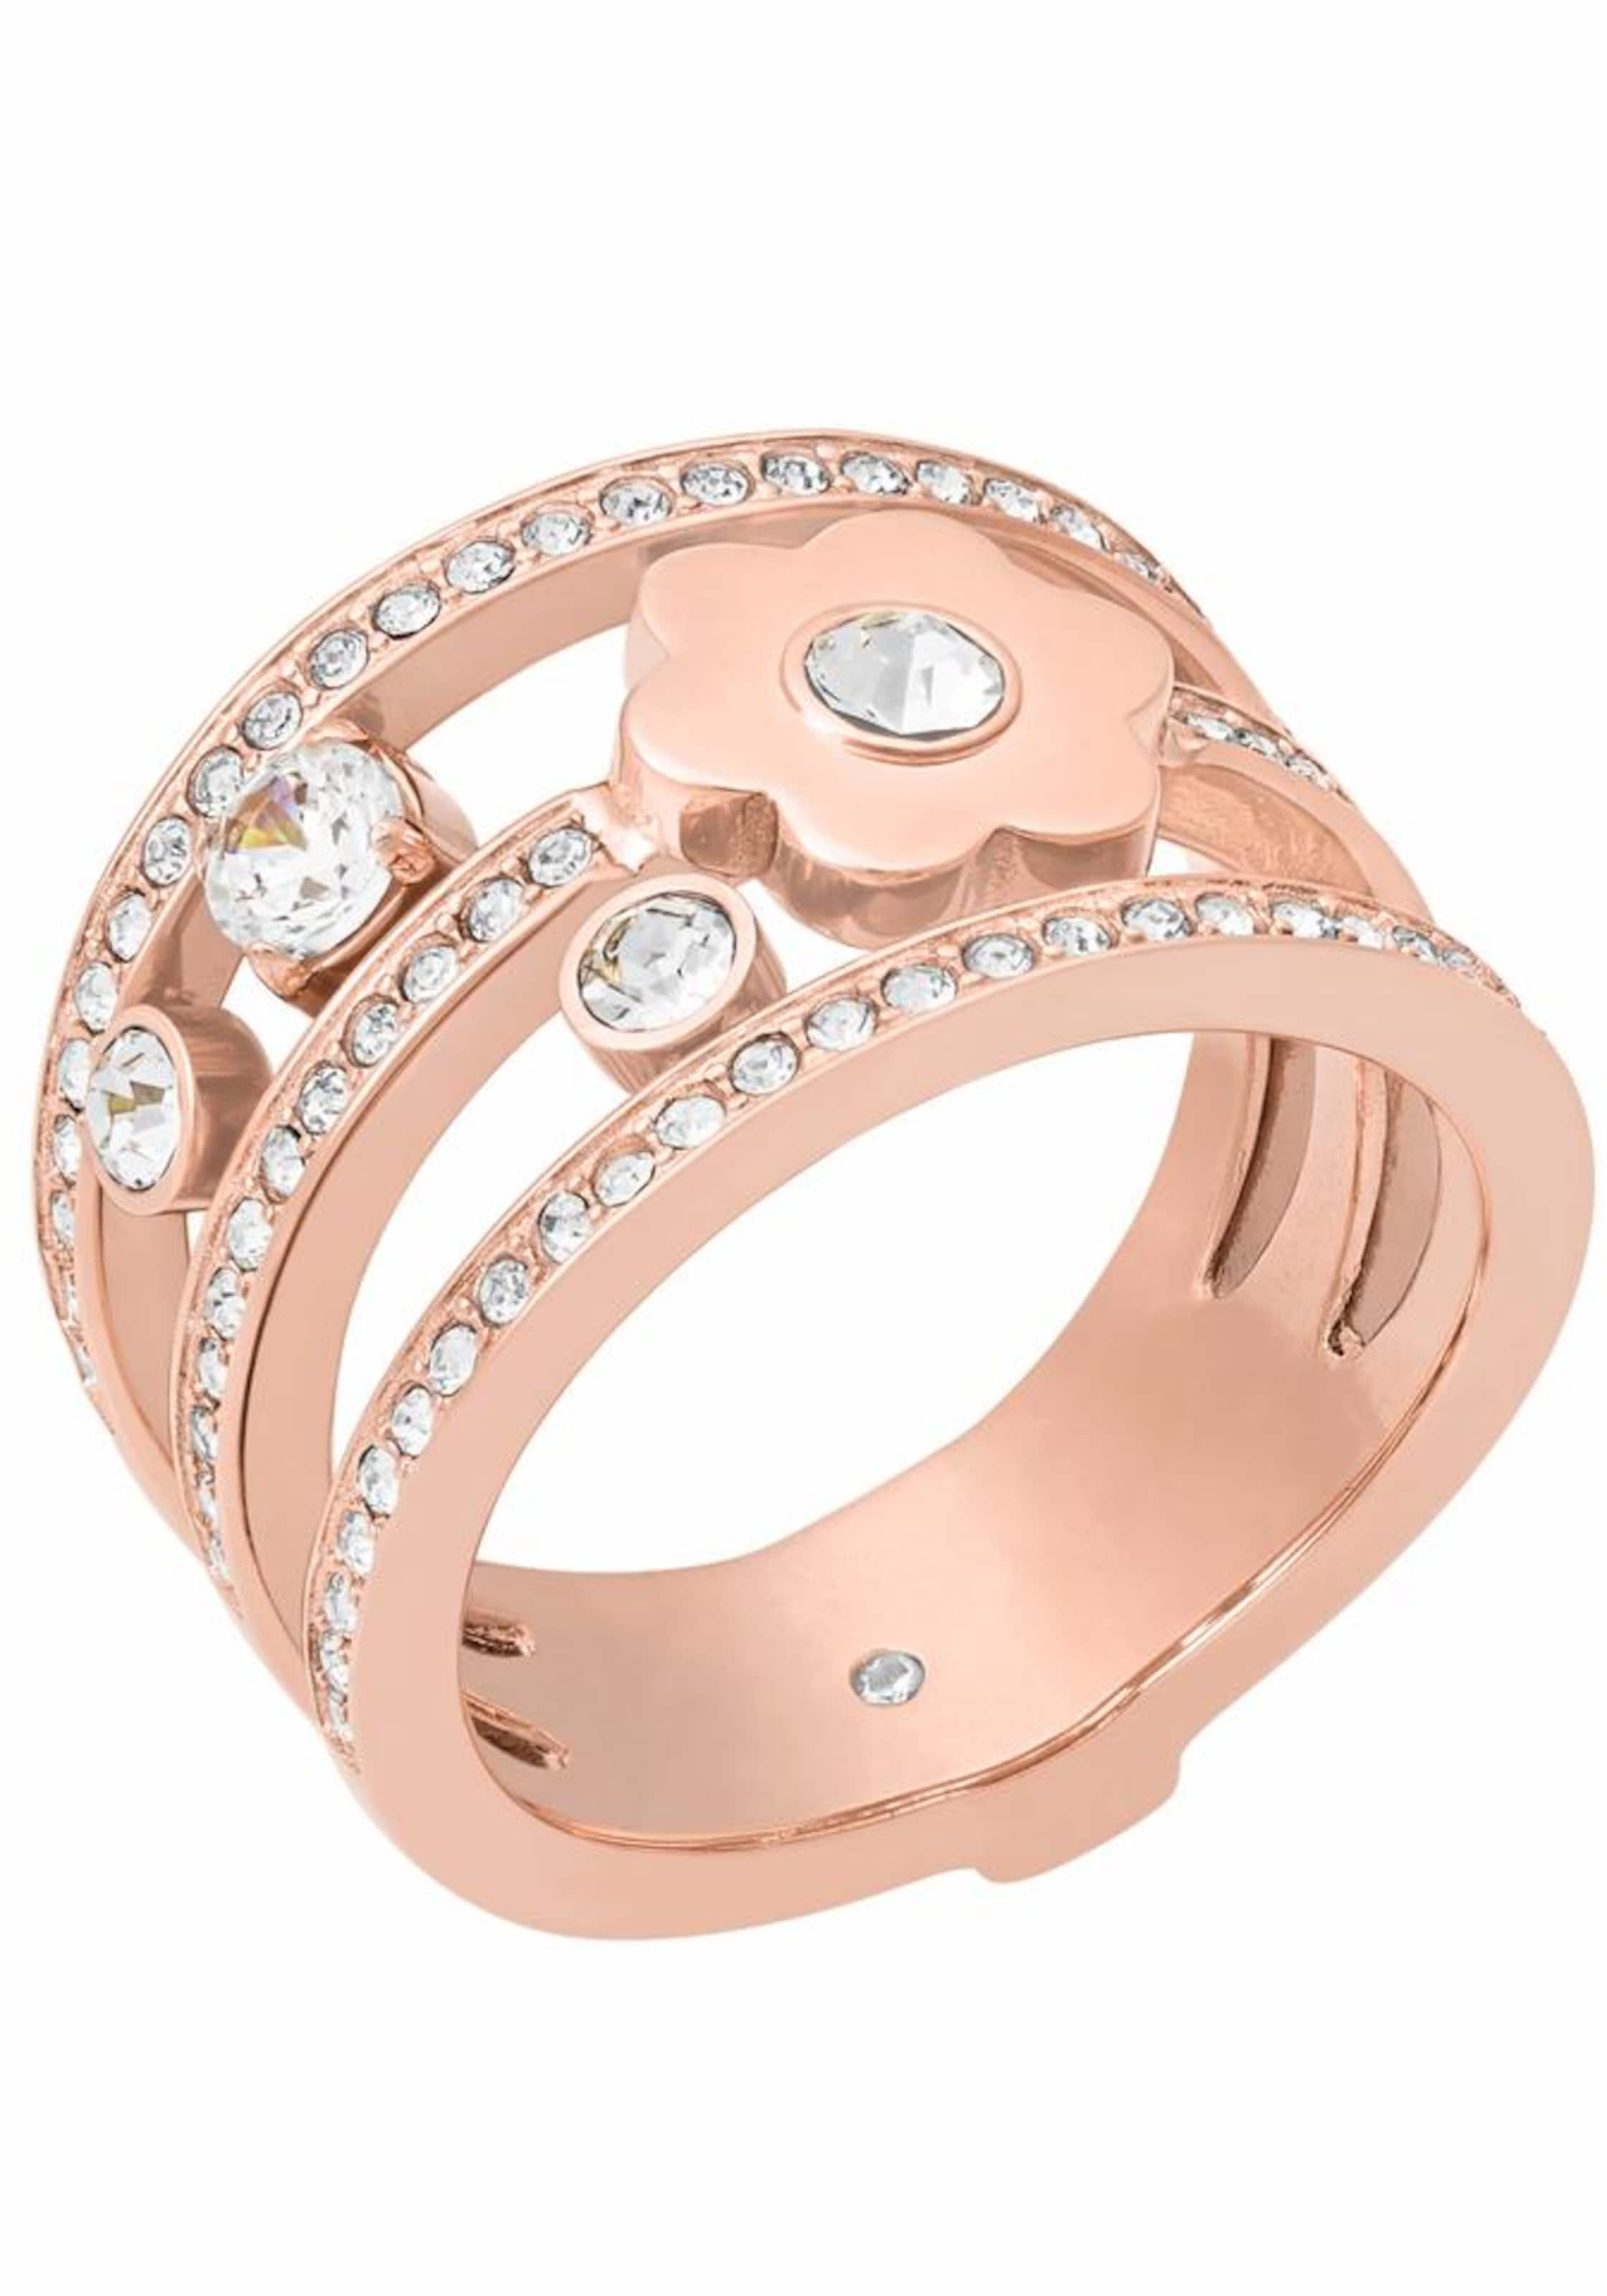 Michael Kors Fingerring 'Blume, FASHION, MKJ7173791'